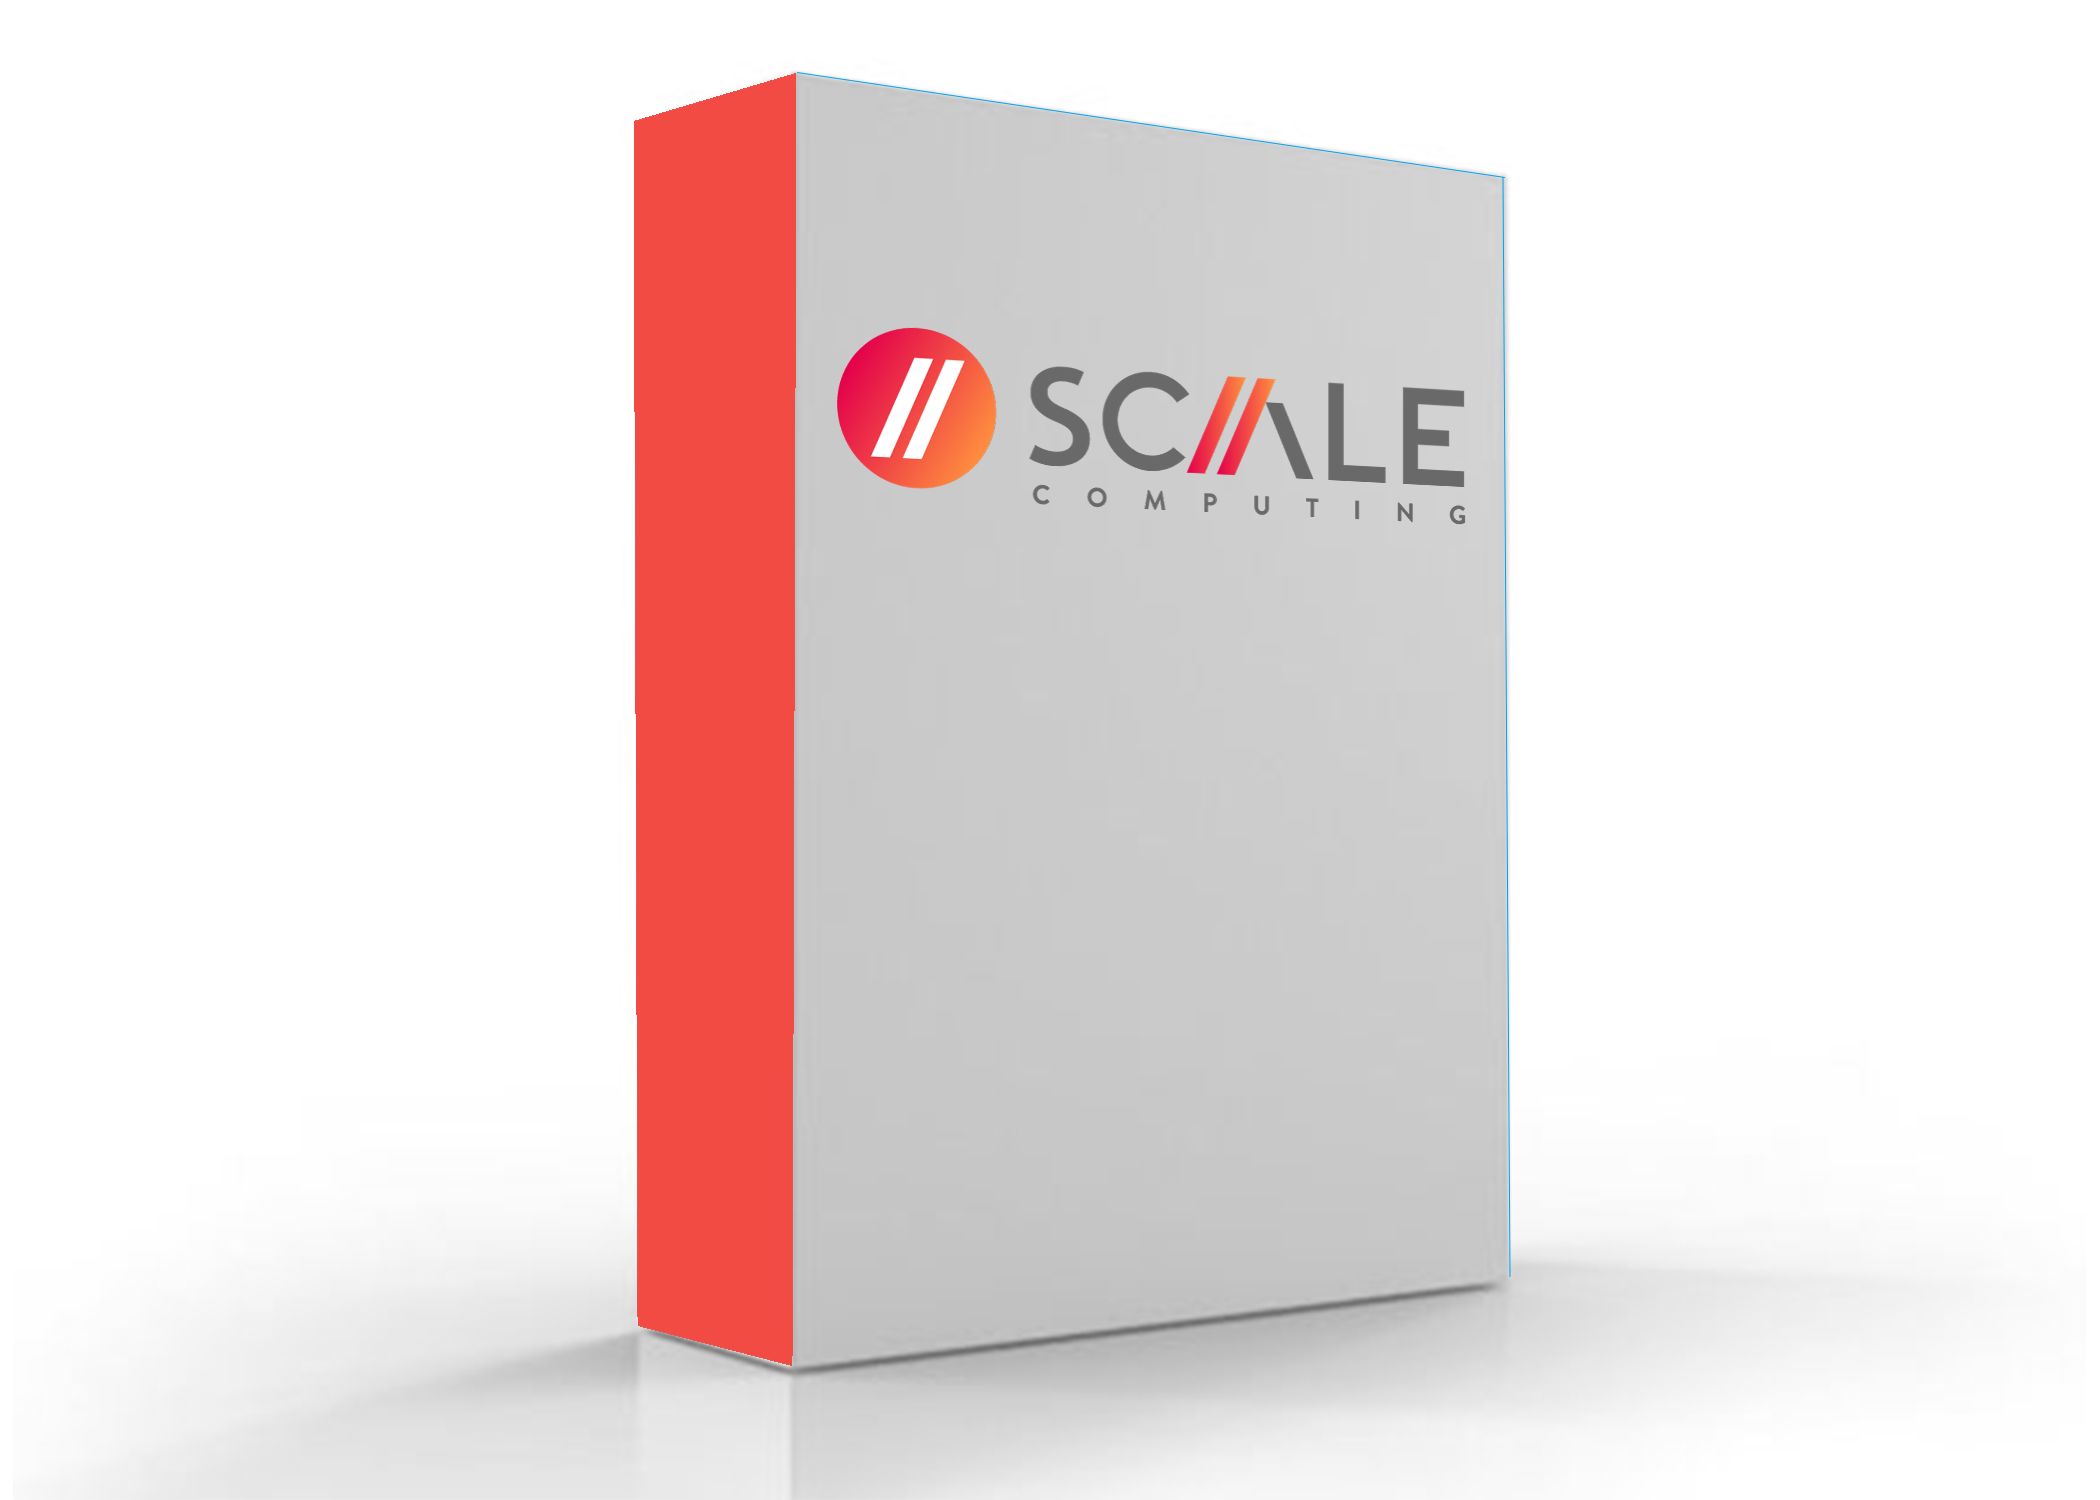 Scale Computing HC3 HyperCore Software Box Shot